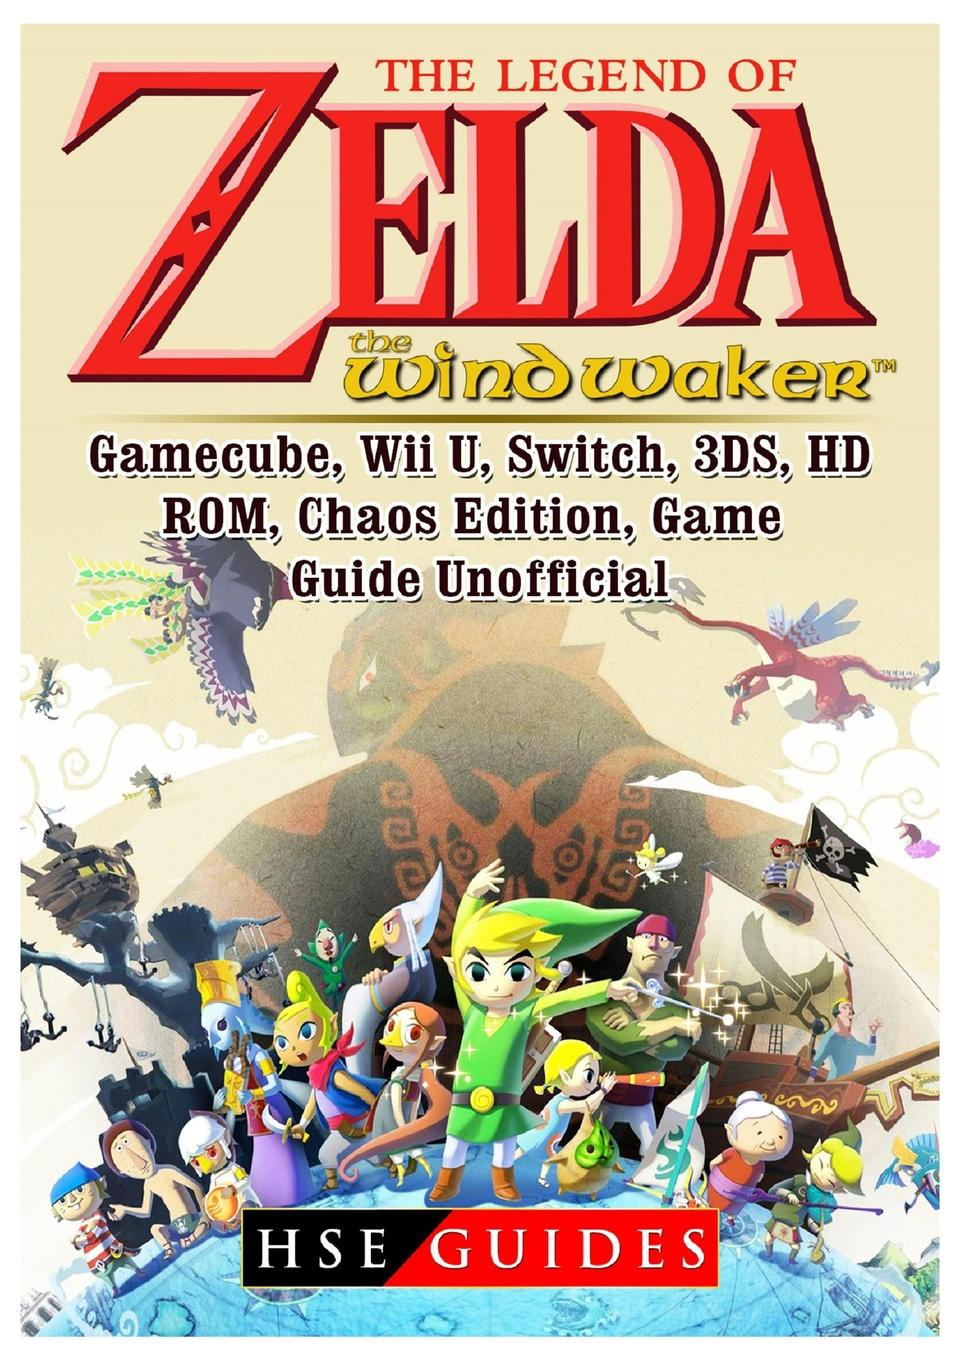 HSE Guides The Legend of Zelda The Wind Waker, Gamecube, Wii U, Switch, 3DS, HD, ROM, Chaos Edition, Game Guide Unofficial фигурка amiibo the legend of zelda зельда the wind waker